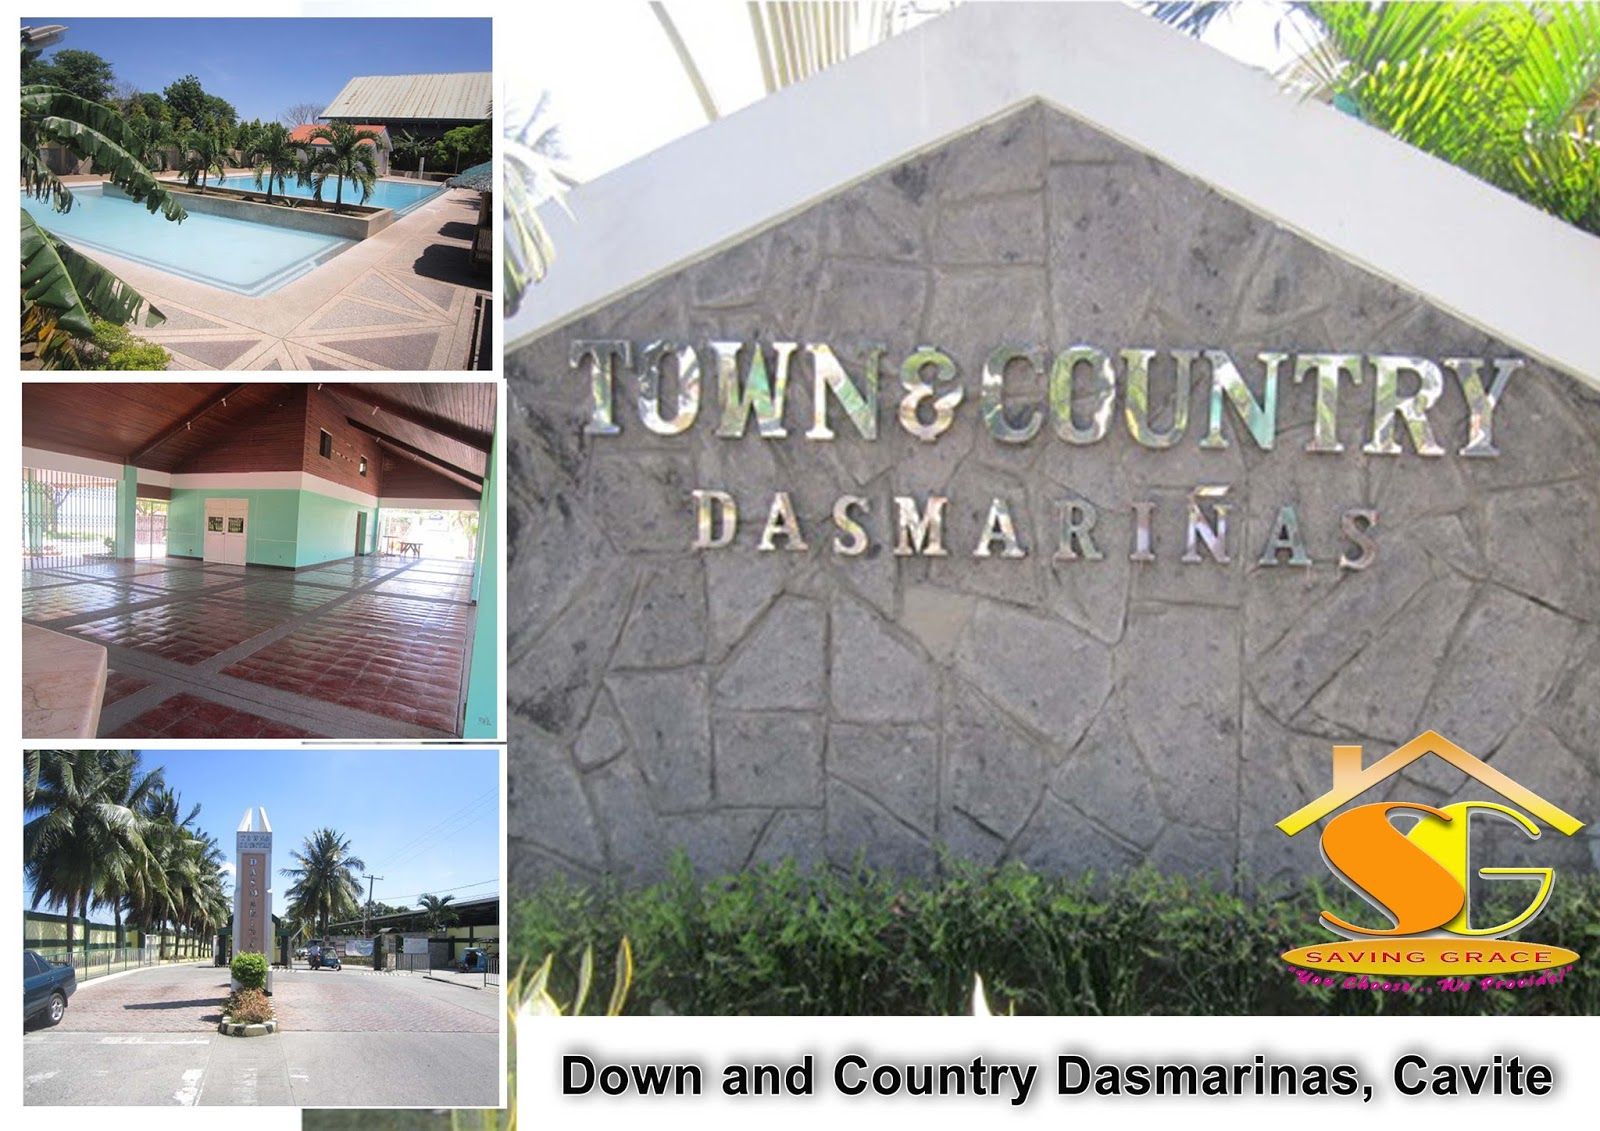 town and country dating services Our goal is to be recognized by our customers as the best at what we do we are committed to offering excellent service at a fair price our reputation for courteous and professional service has become one that is second to none.